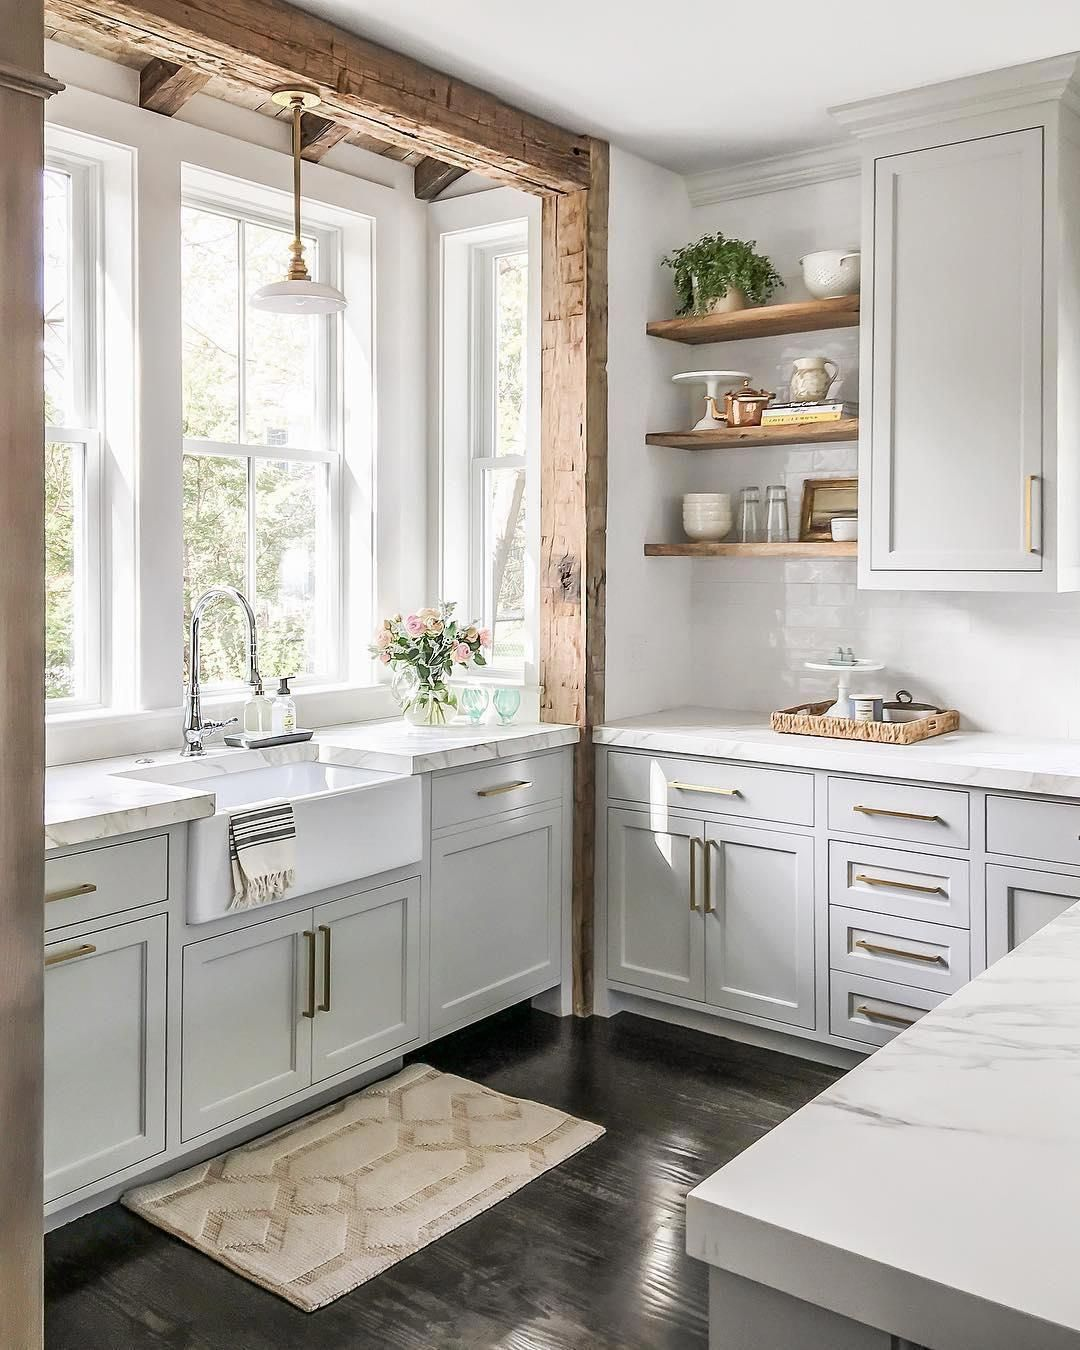 Reclaimed Wooden Beams Surround This Dreamy Farmhouse Sink Area Featuring The Boston Pendant By E F In 2020 Farmhouse Kitchen Design Kitchen Design Small Kitchen Style